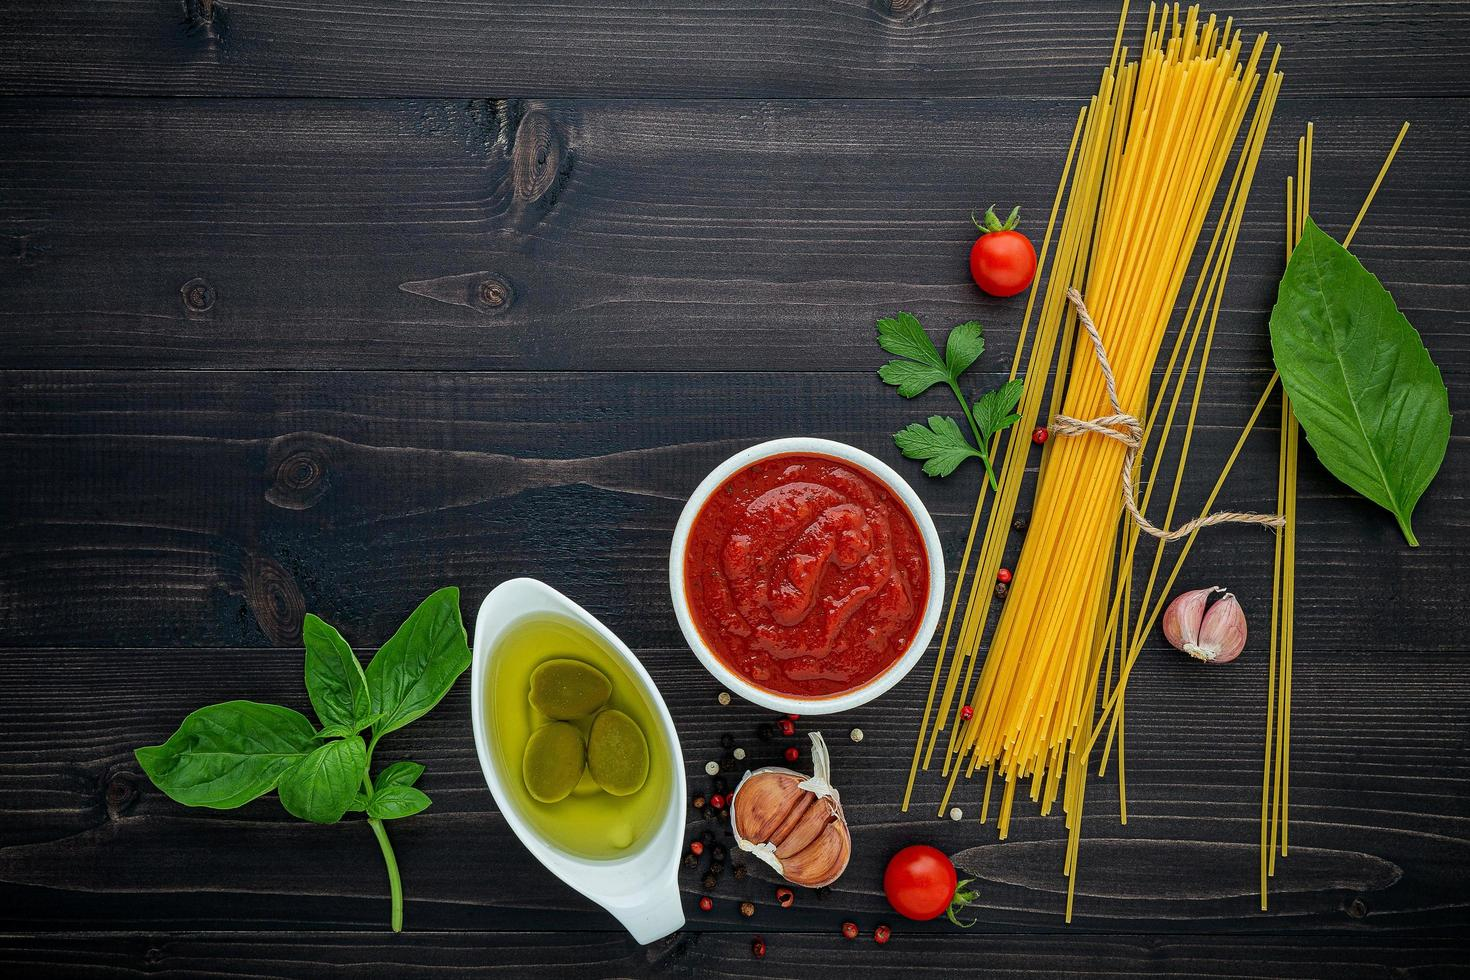 Spaghetti ingredients on dark wood photo